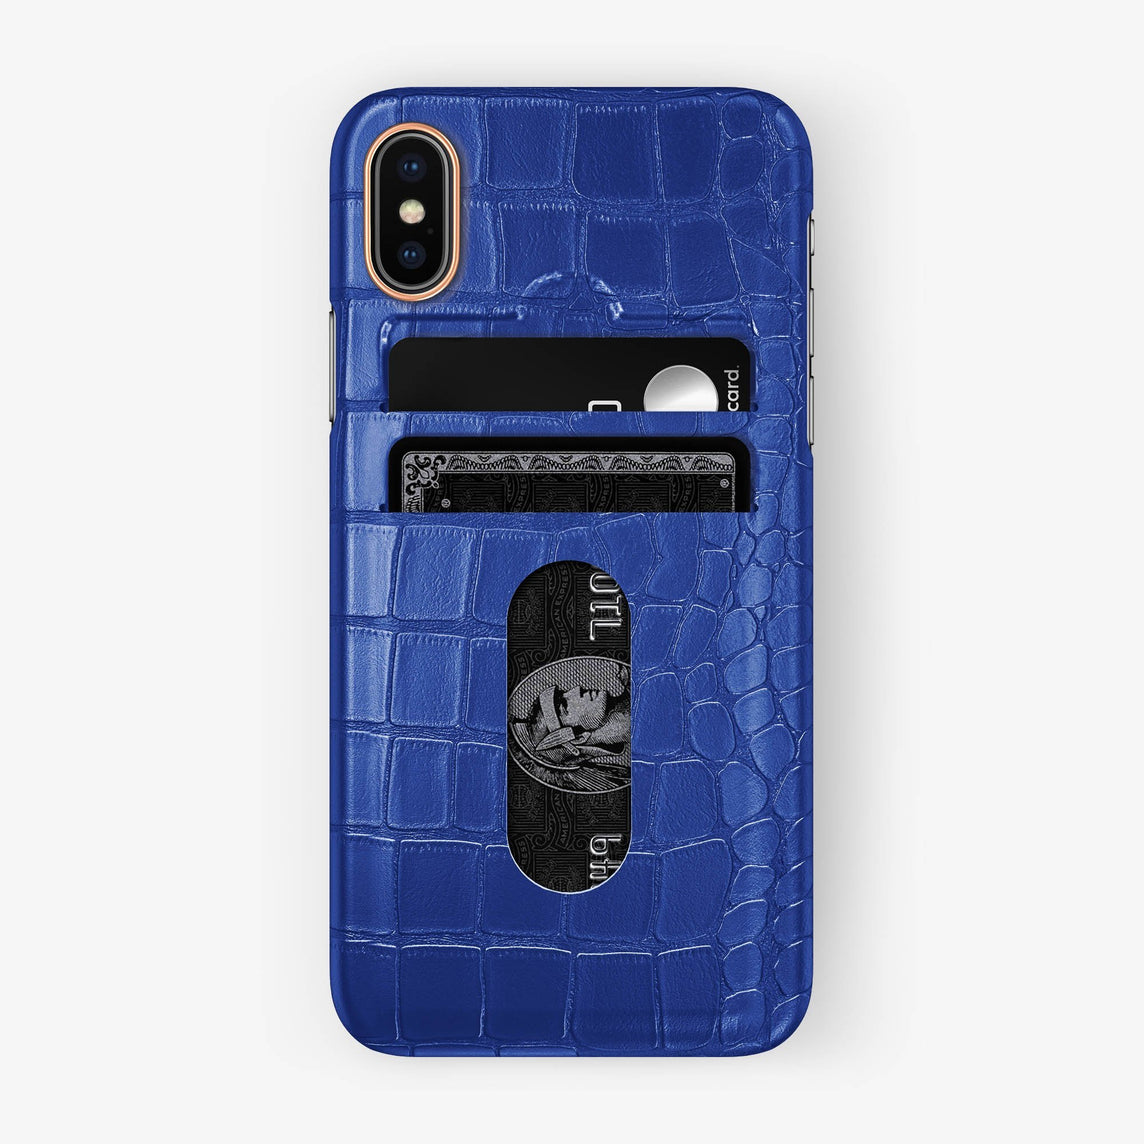 Alligator Card Holder Case iPhone X/Xs | Peony Blue - Rose Gold - Hadoro